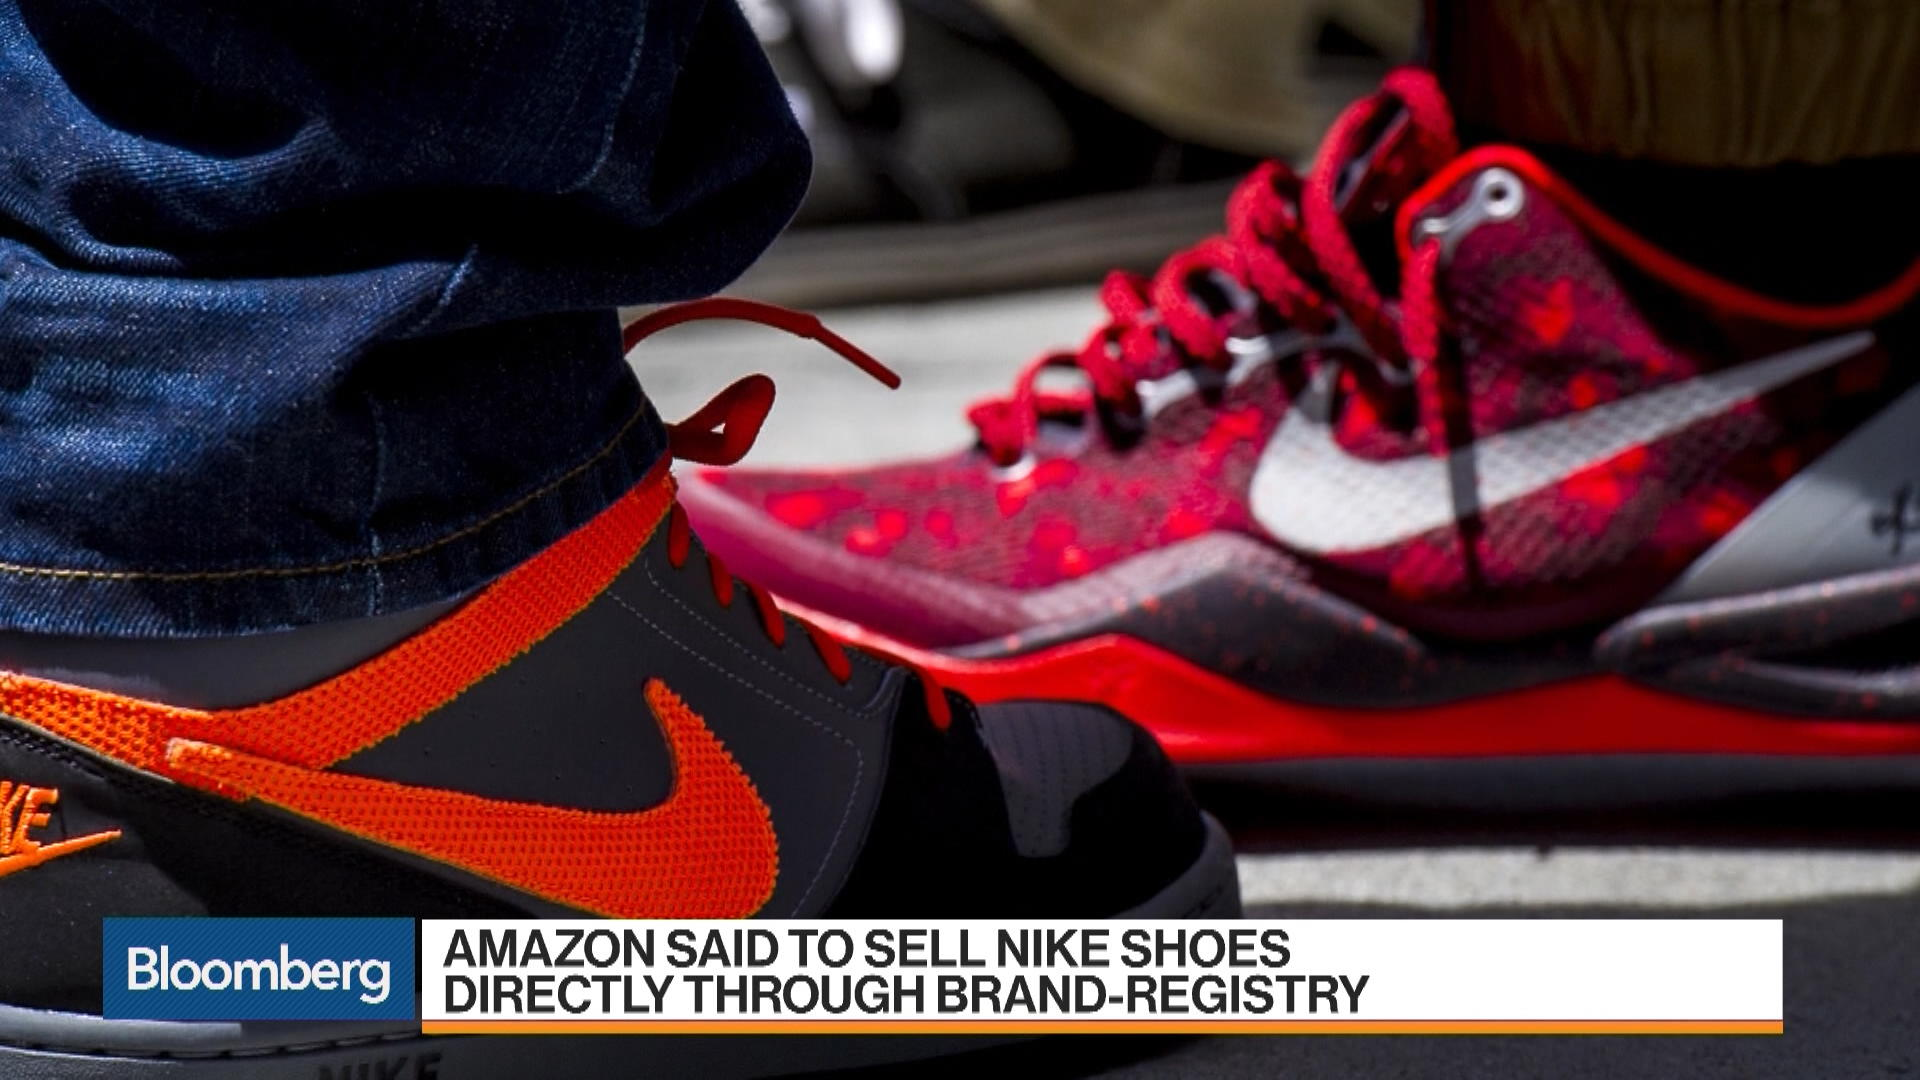 Will Nike Shoes Directly Through Brand Registry